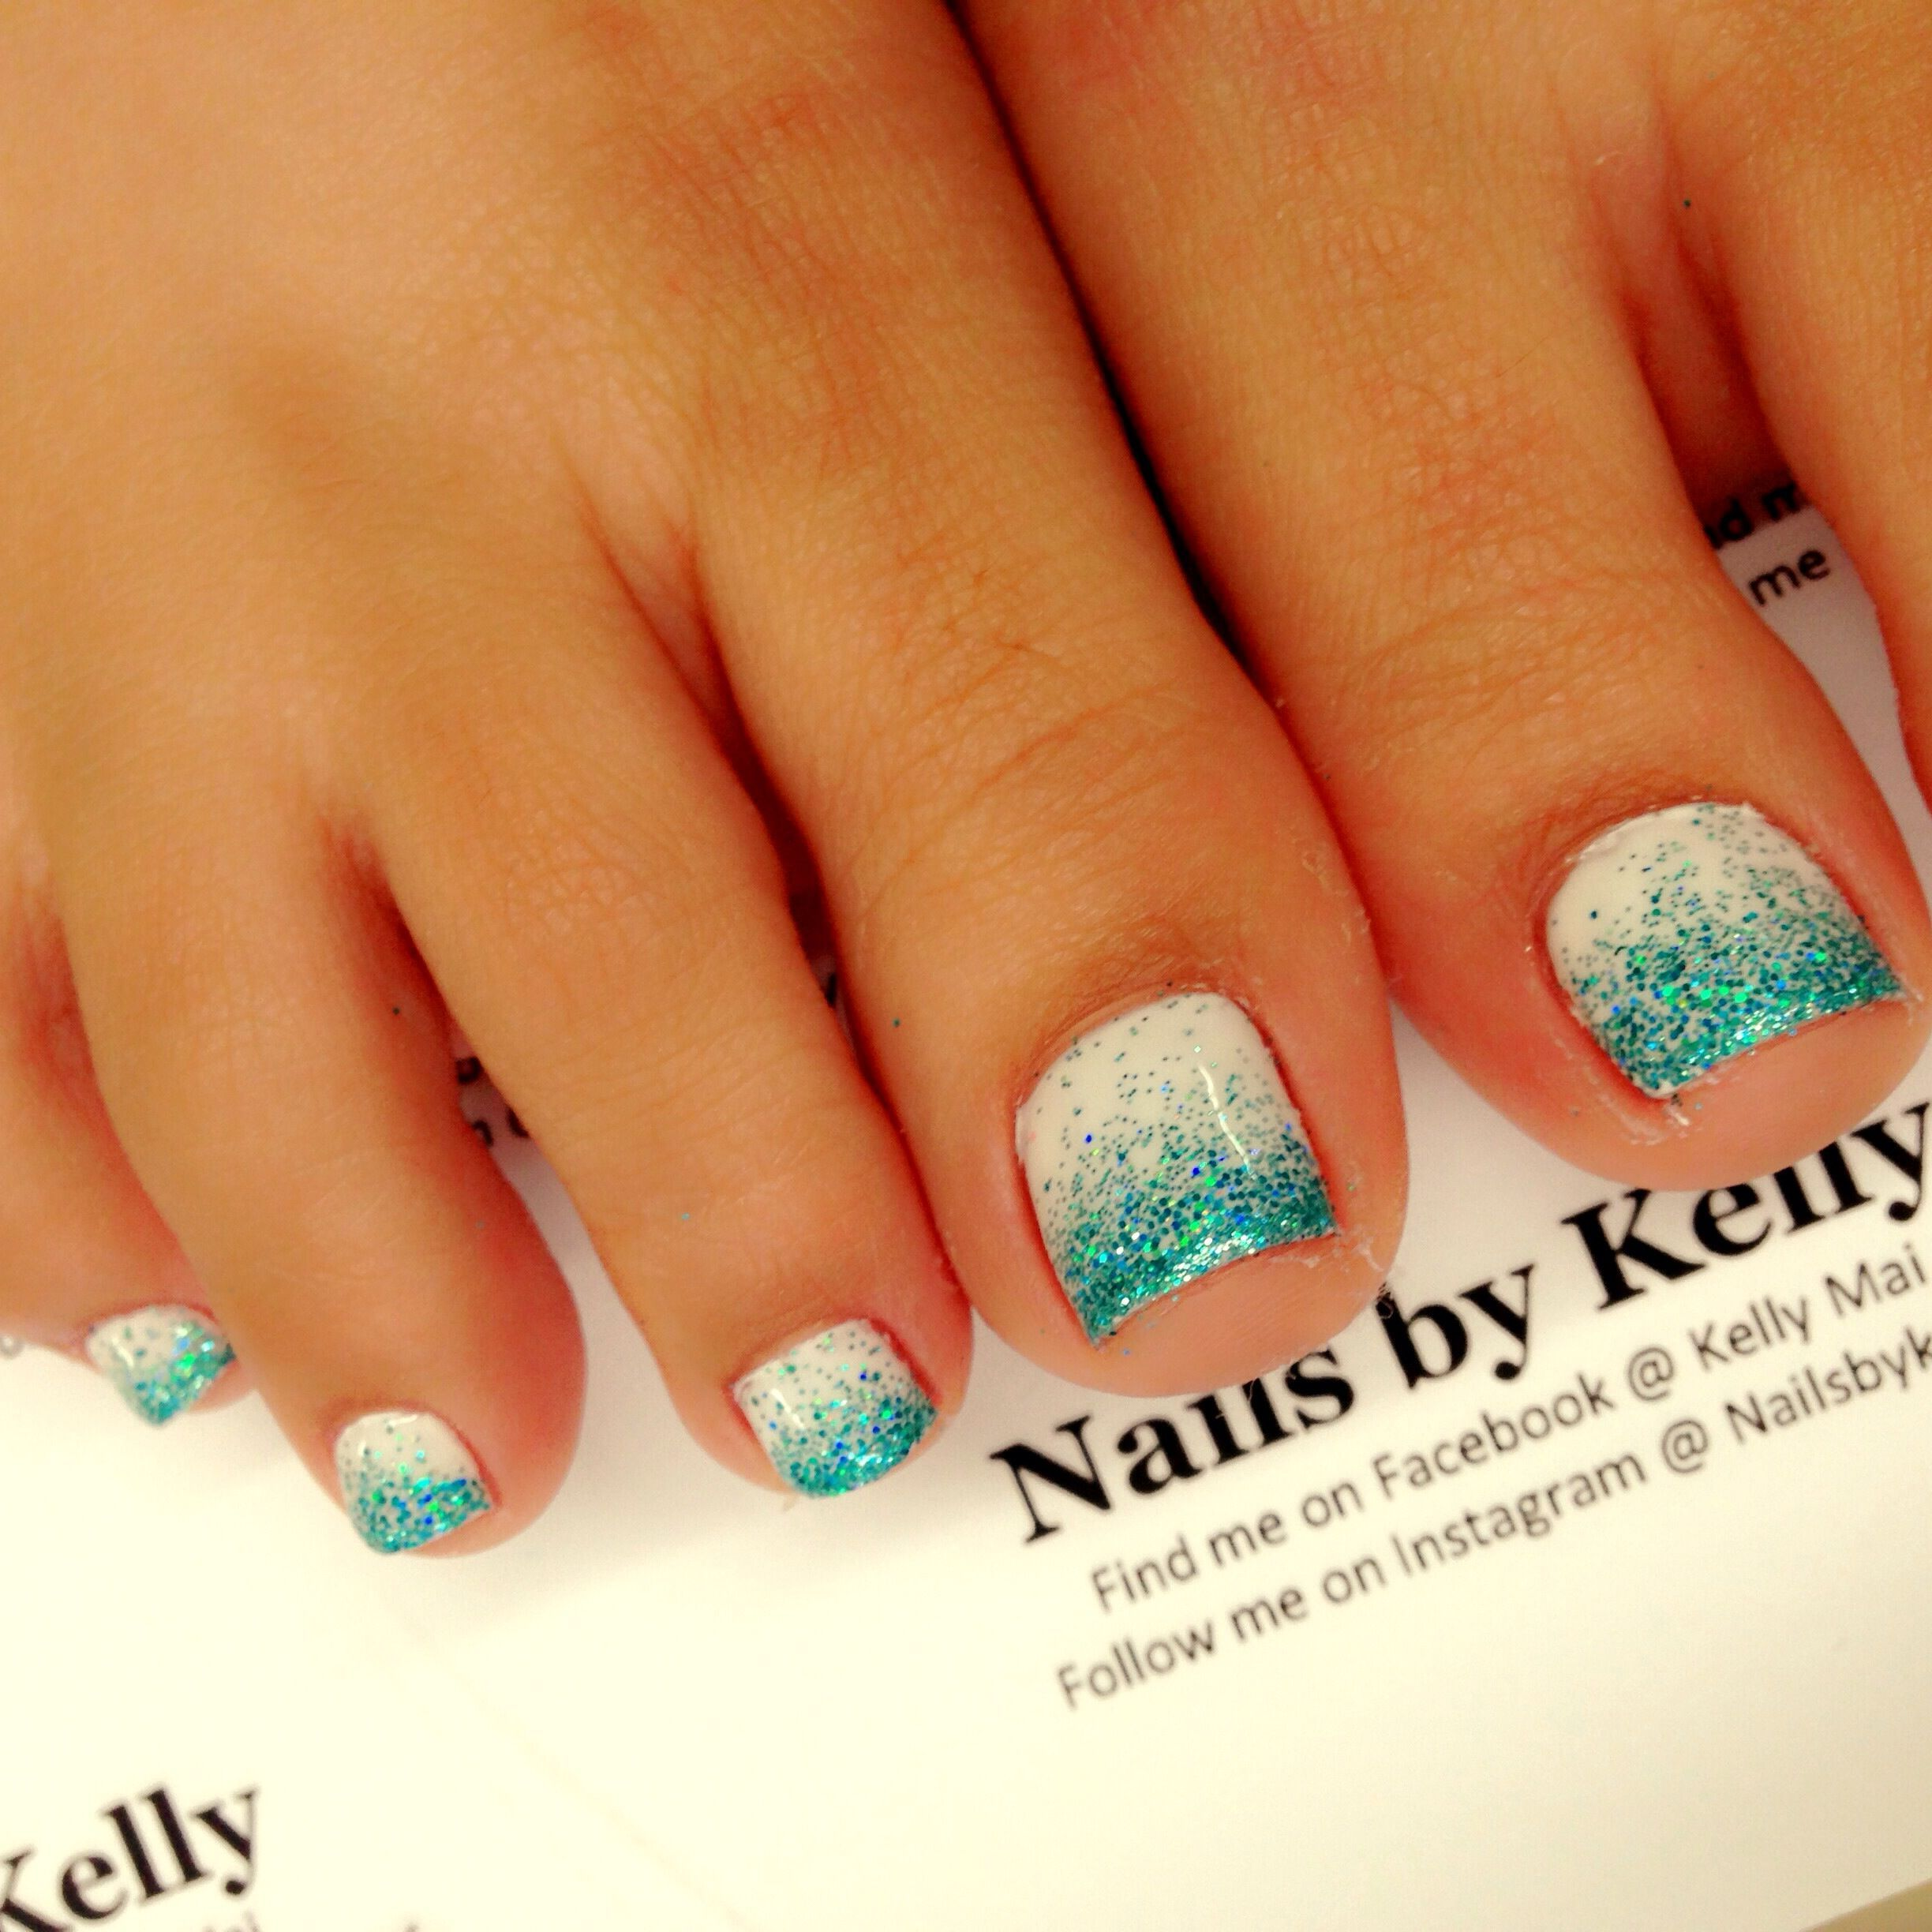 20 Toe Nails Designs That Fit Any Occasion 20 Toe Nails Designs That Fit Any Occasion new pics